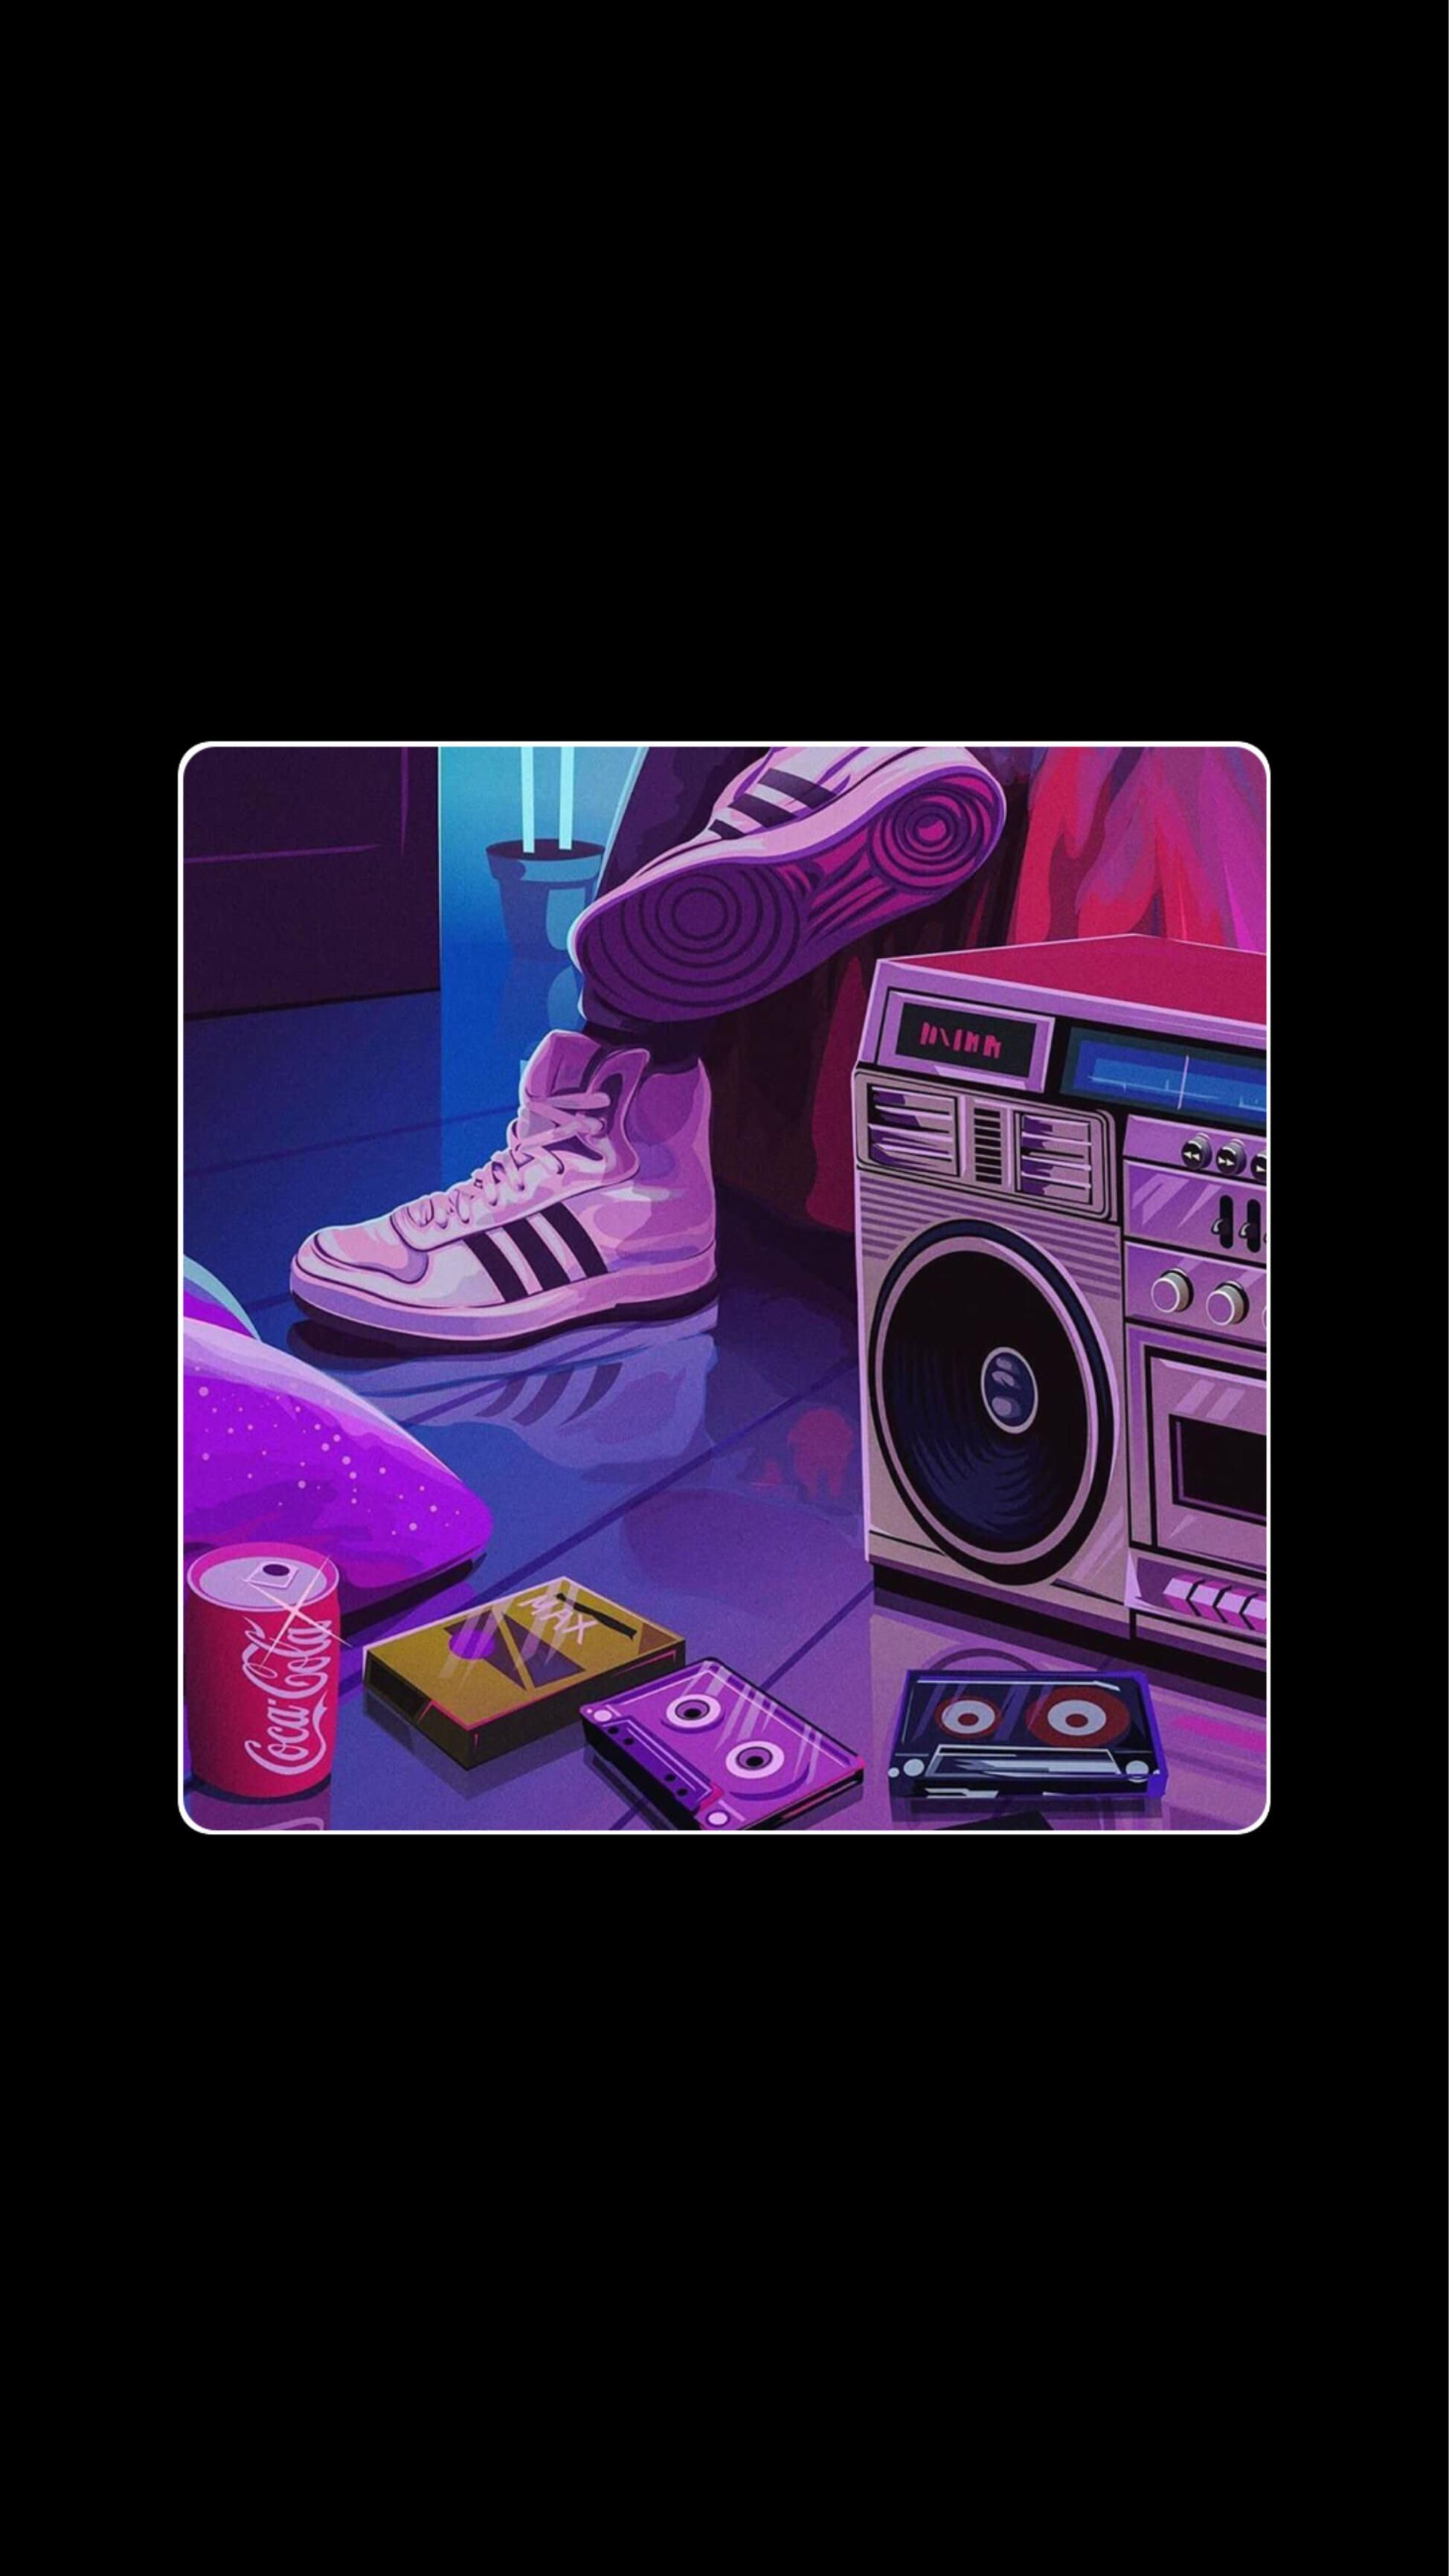 Full Picture Was Found On R Outrun In 2020 Iphone Wallpaper Vintage Vaporwave Wallpaper Synthwave Art